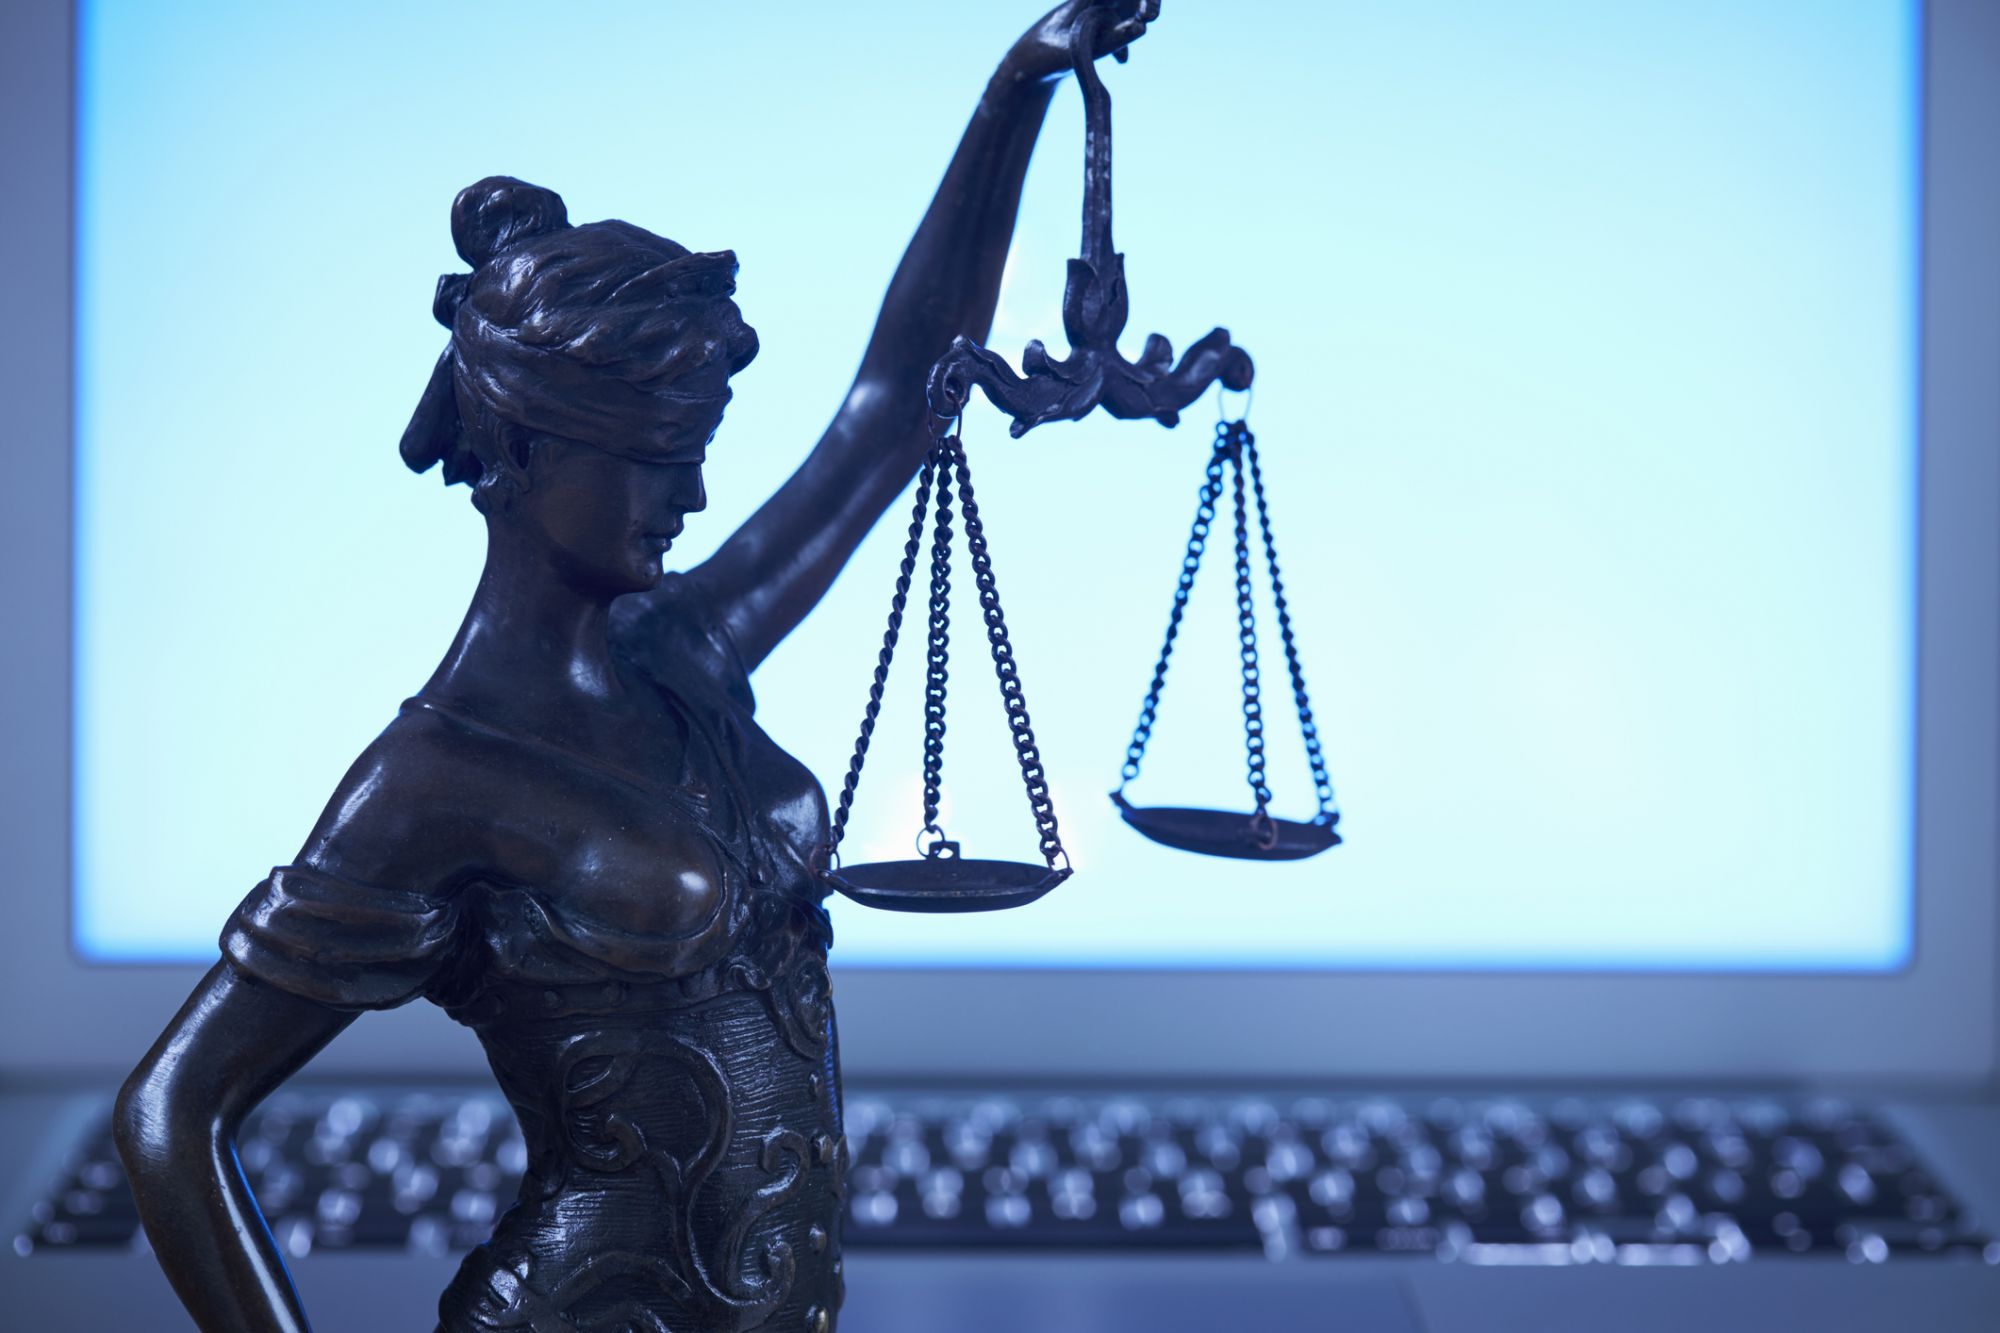 Compliance with European Law by Online Businesses